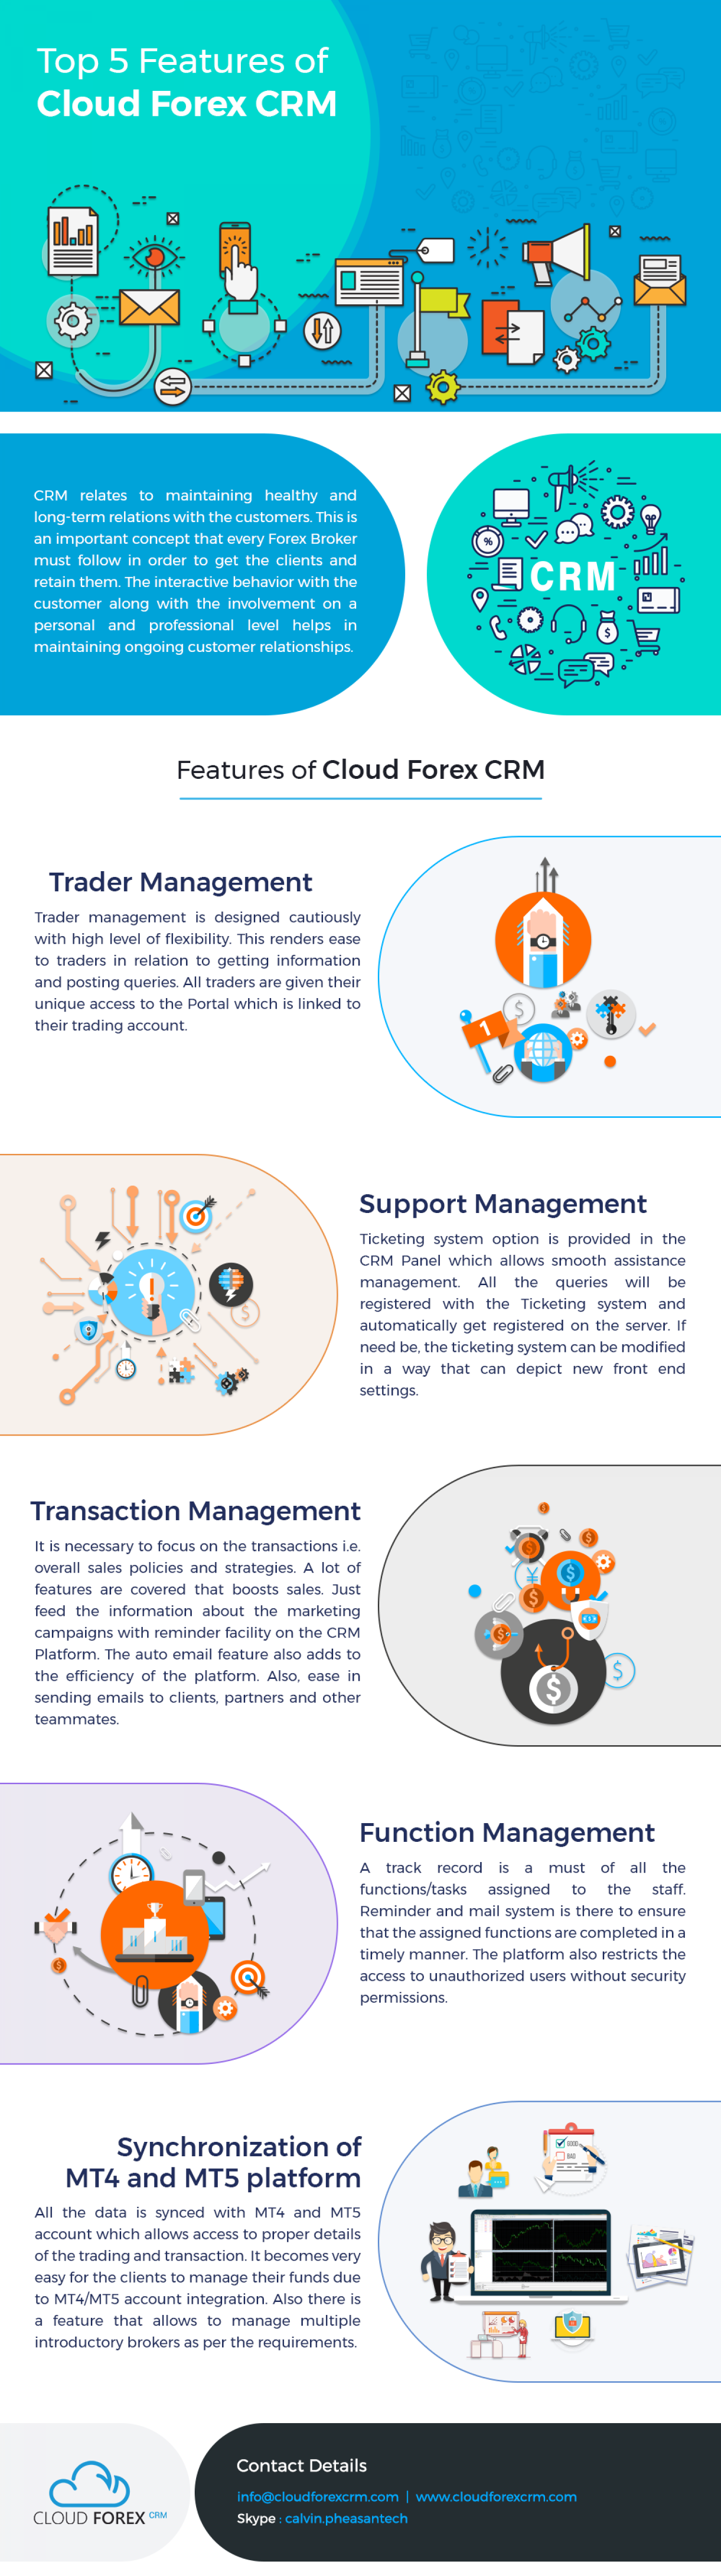 Top 5 Features of Cloud Forex CRM Infographic